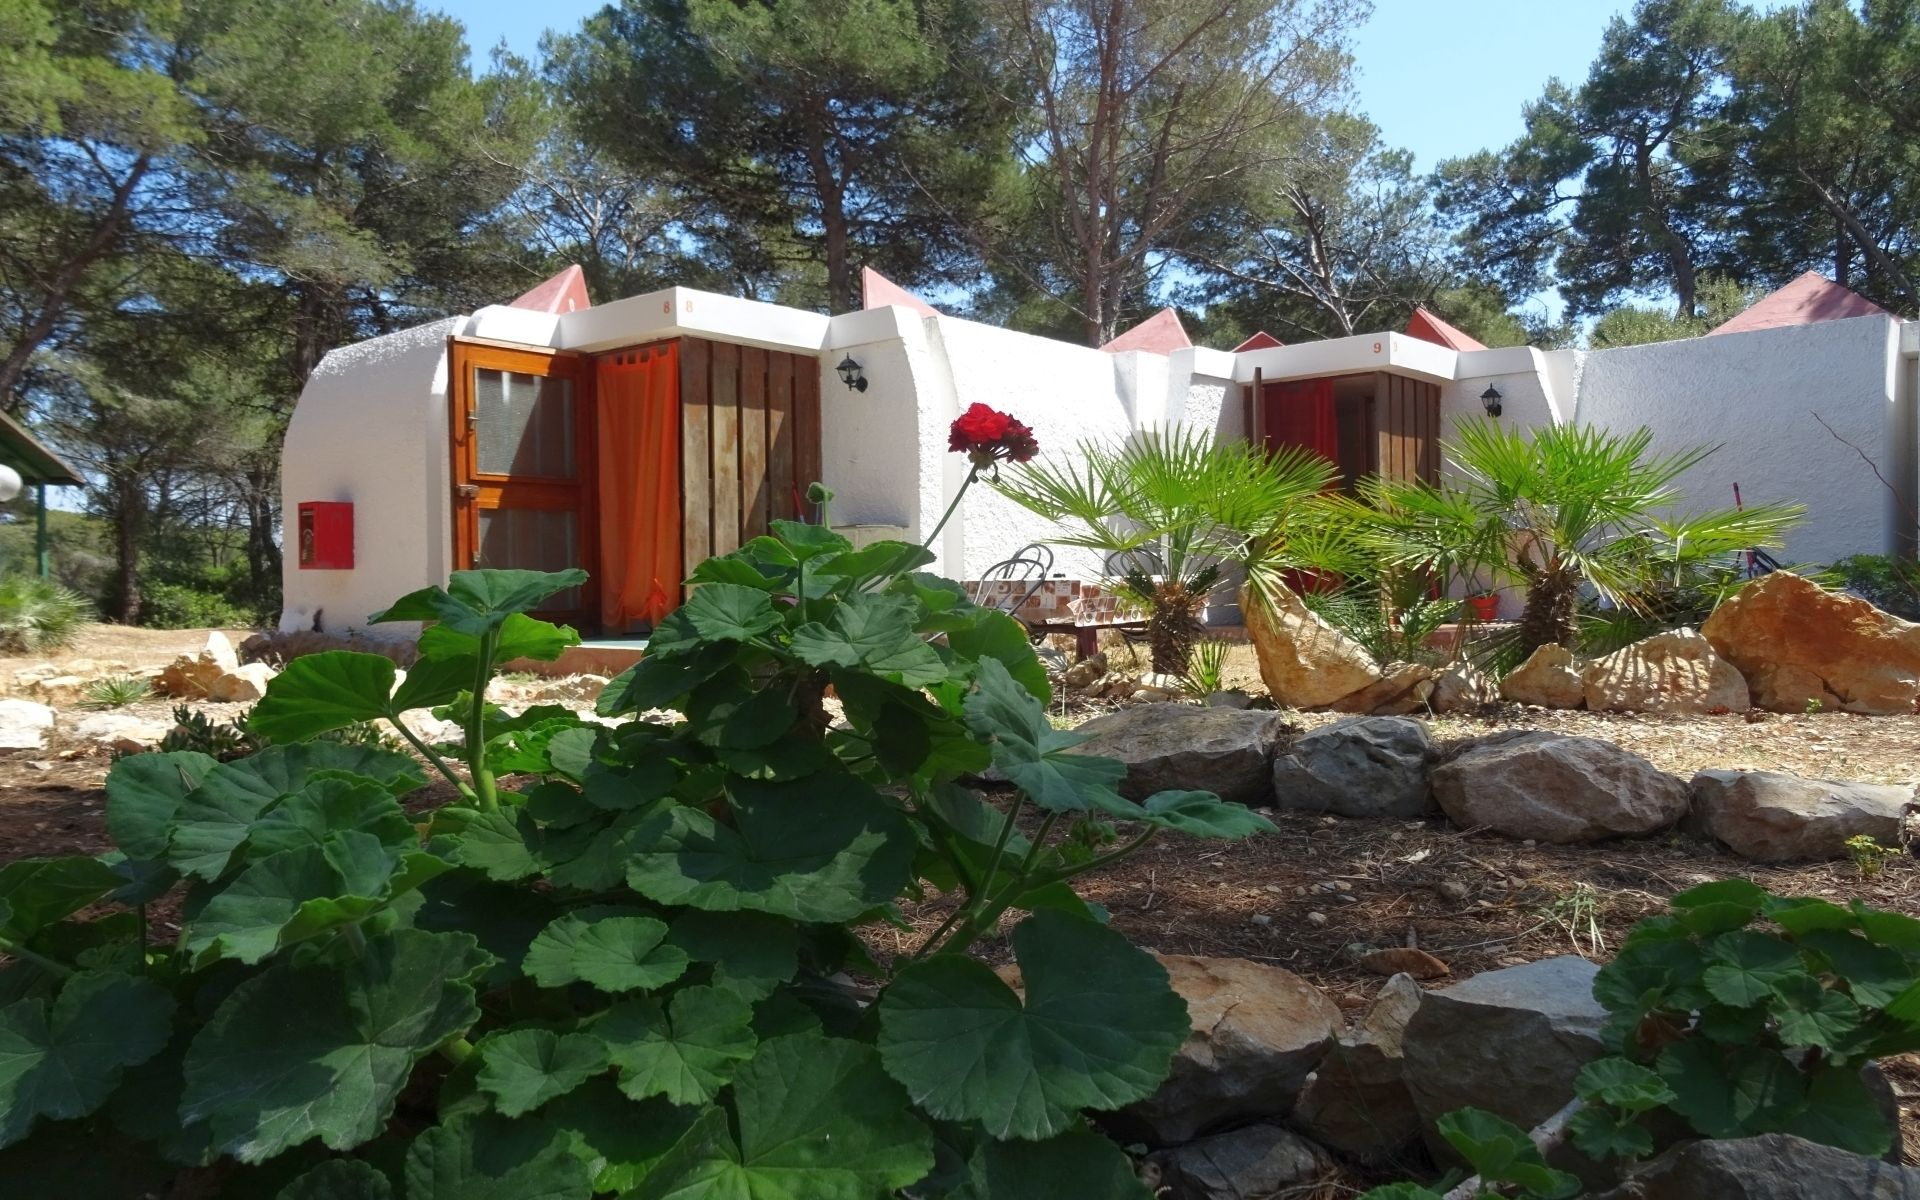 Villaggio Nurral - Campground